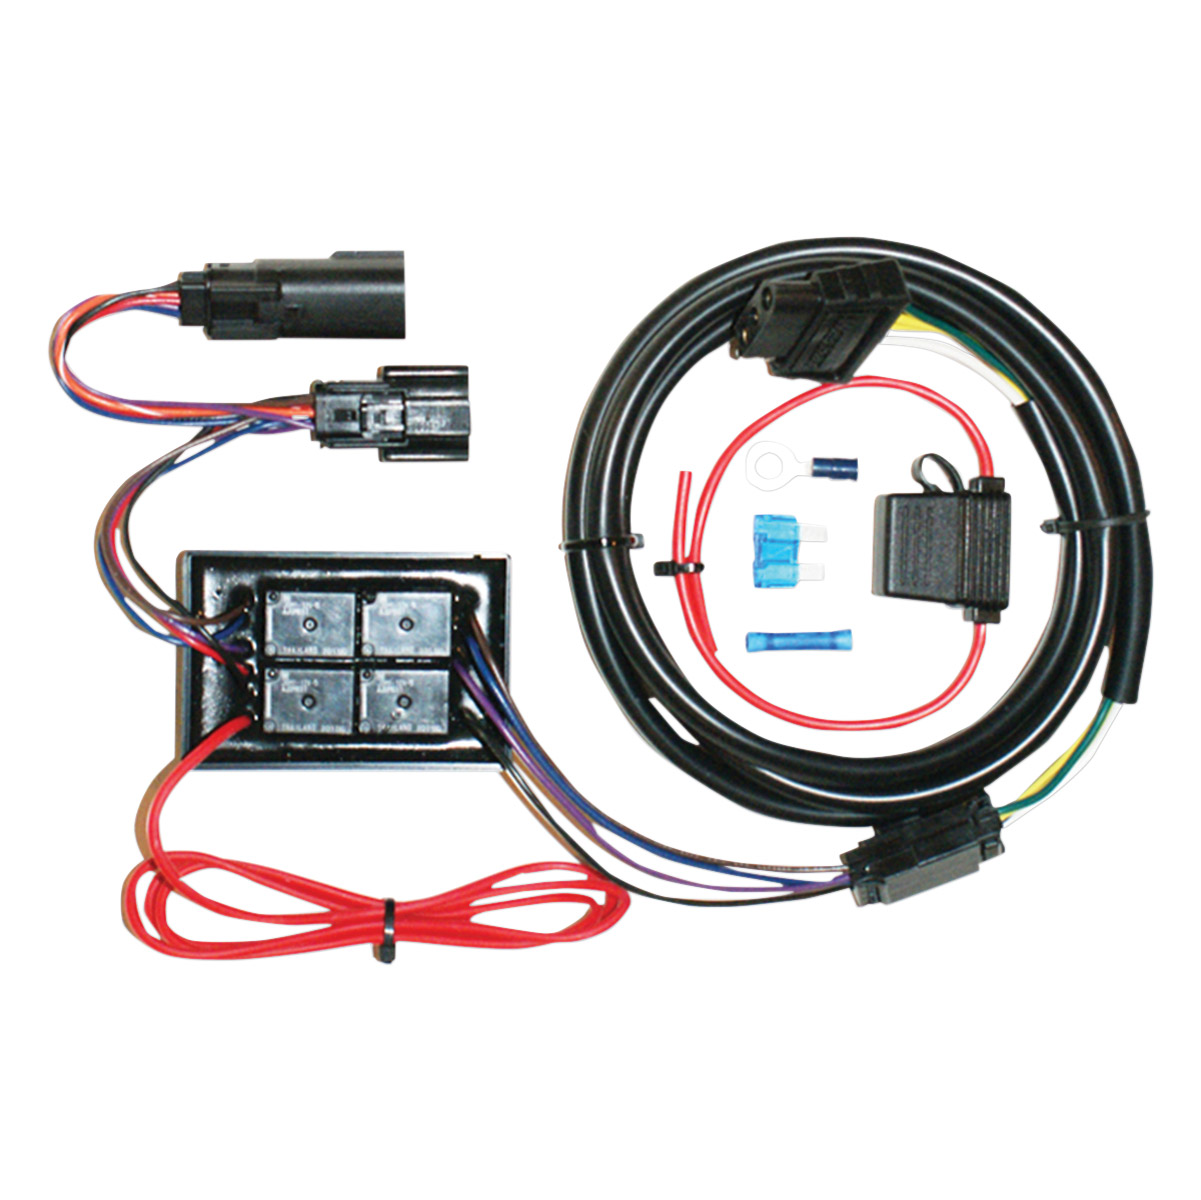 Khrome Werks 4 Wire Isolator With Converter Trailer Wiring Kit | 162 ...